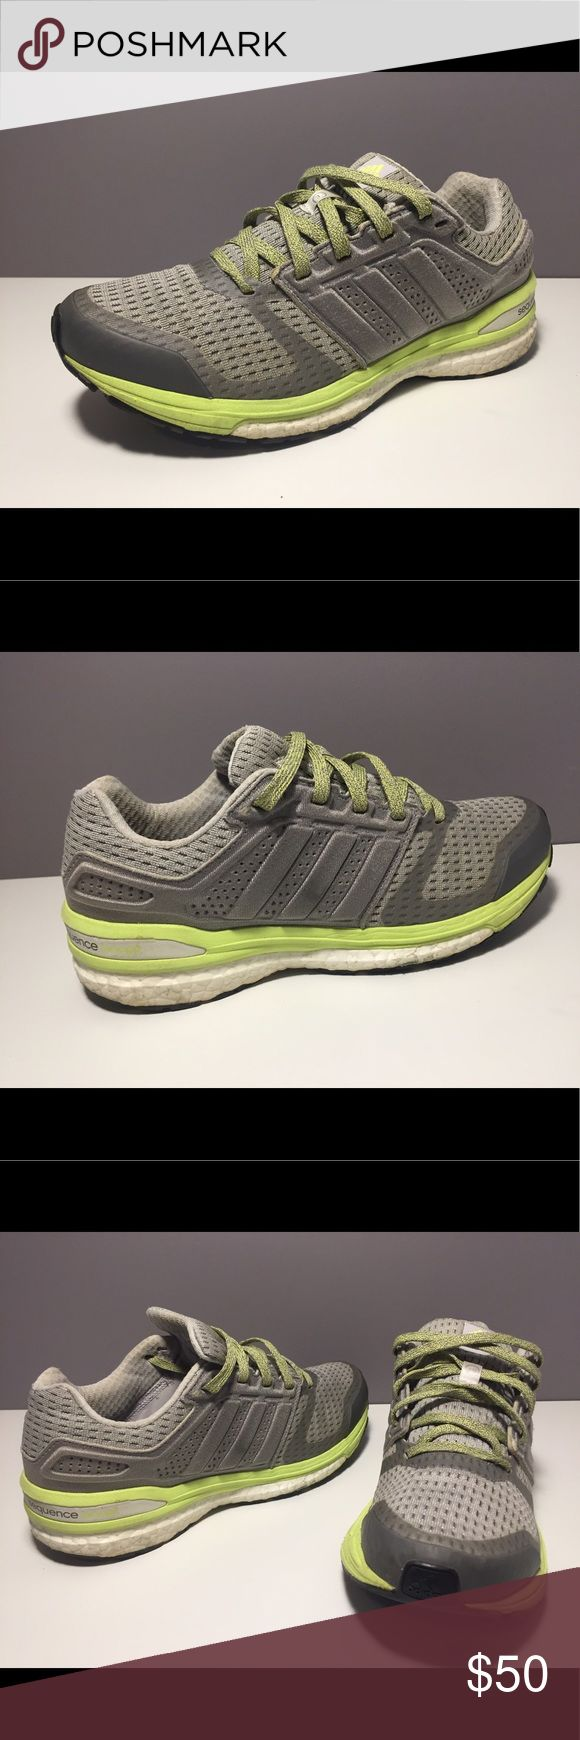 Adidas Sequence Boost Shoes Adidas Sequence Boost Shoes - Size 7 - pre owned, great condition, only worn a handful of times, comfy - see pictures Adidas Shoes Athletic Shoes